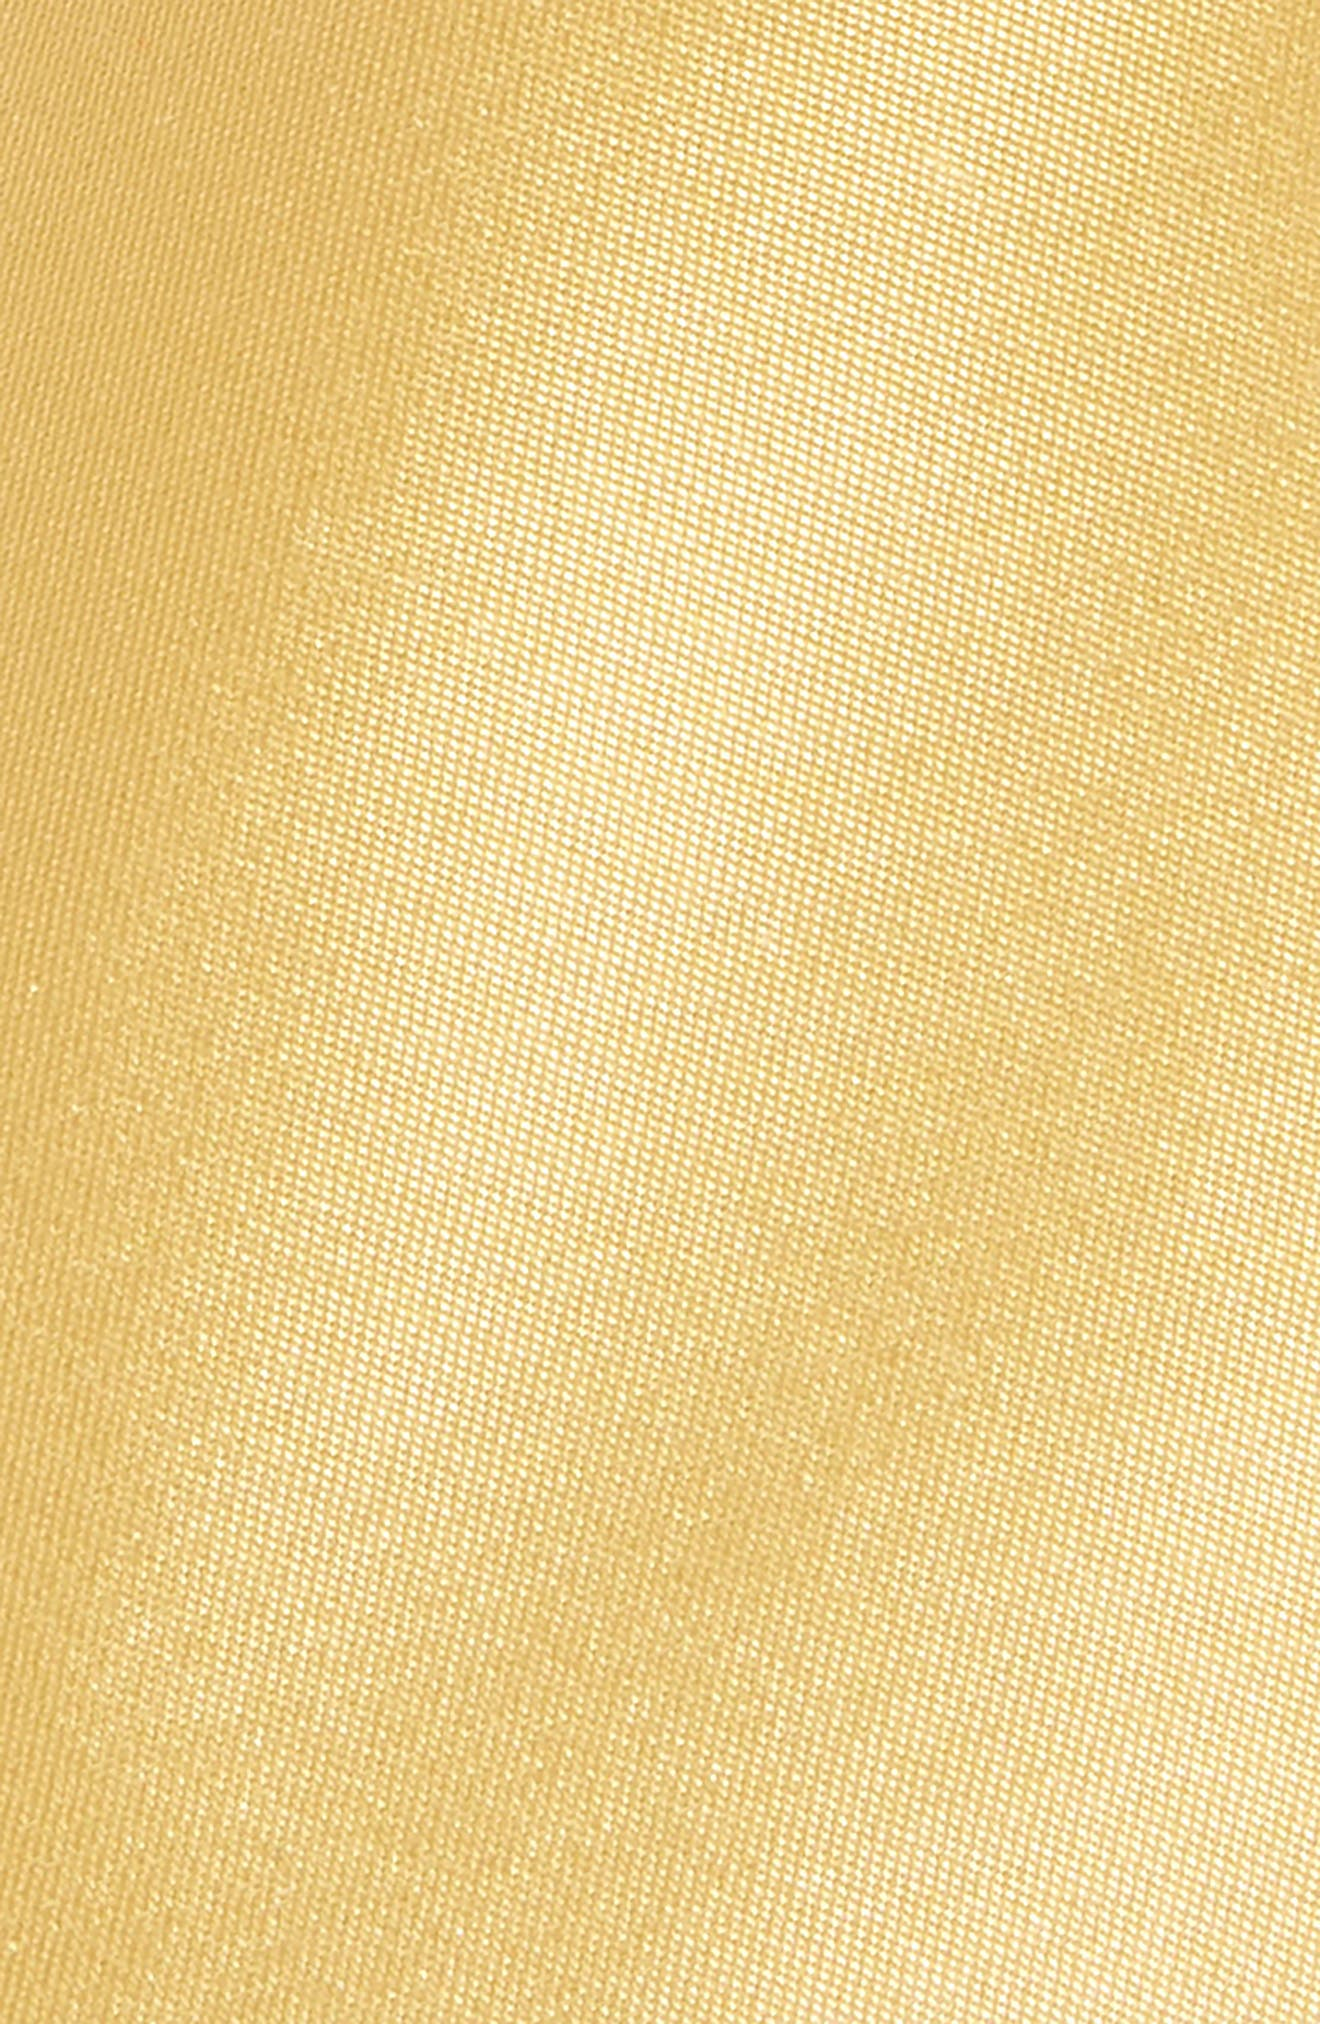 Solid Matte Satin Tie,                             Alternate thumbnail 2, color,                             Yellow